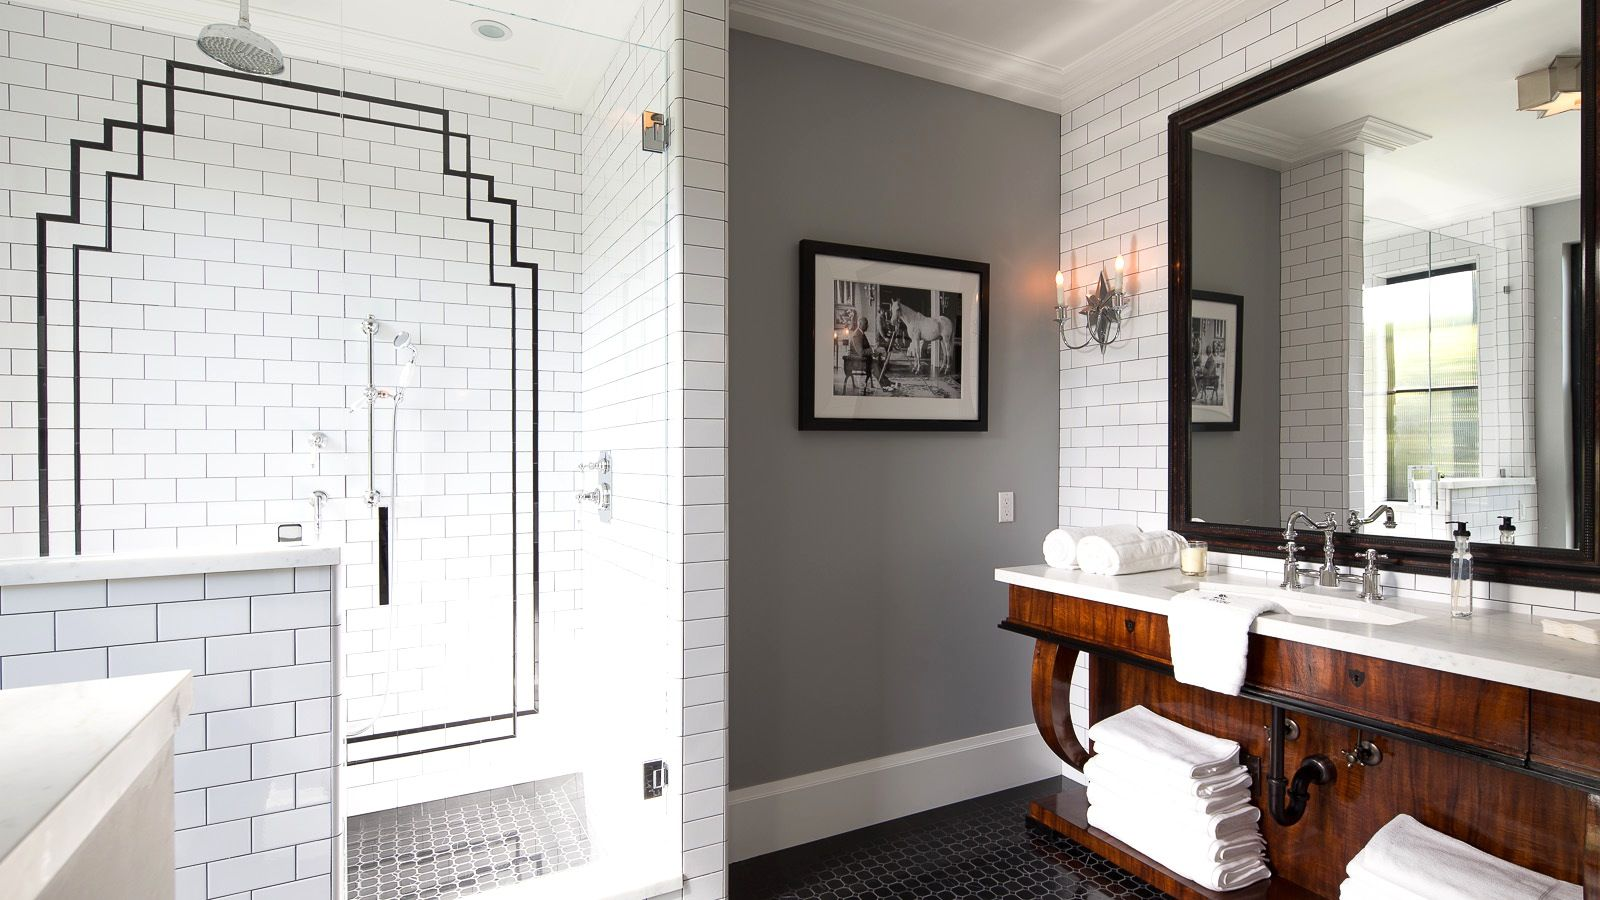 Black and white art deco bathroom - Deco Bathroom Ideas Black And White Visi Decorating Bathroom Ideas Black And White Visi Build